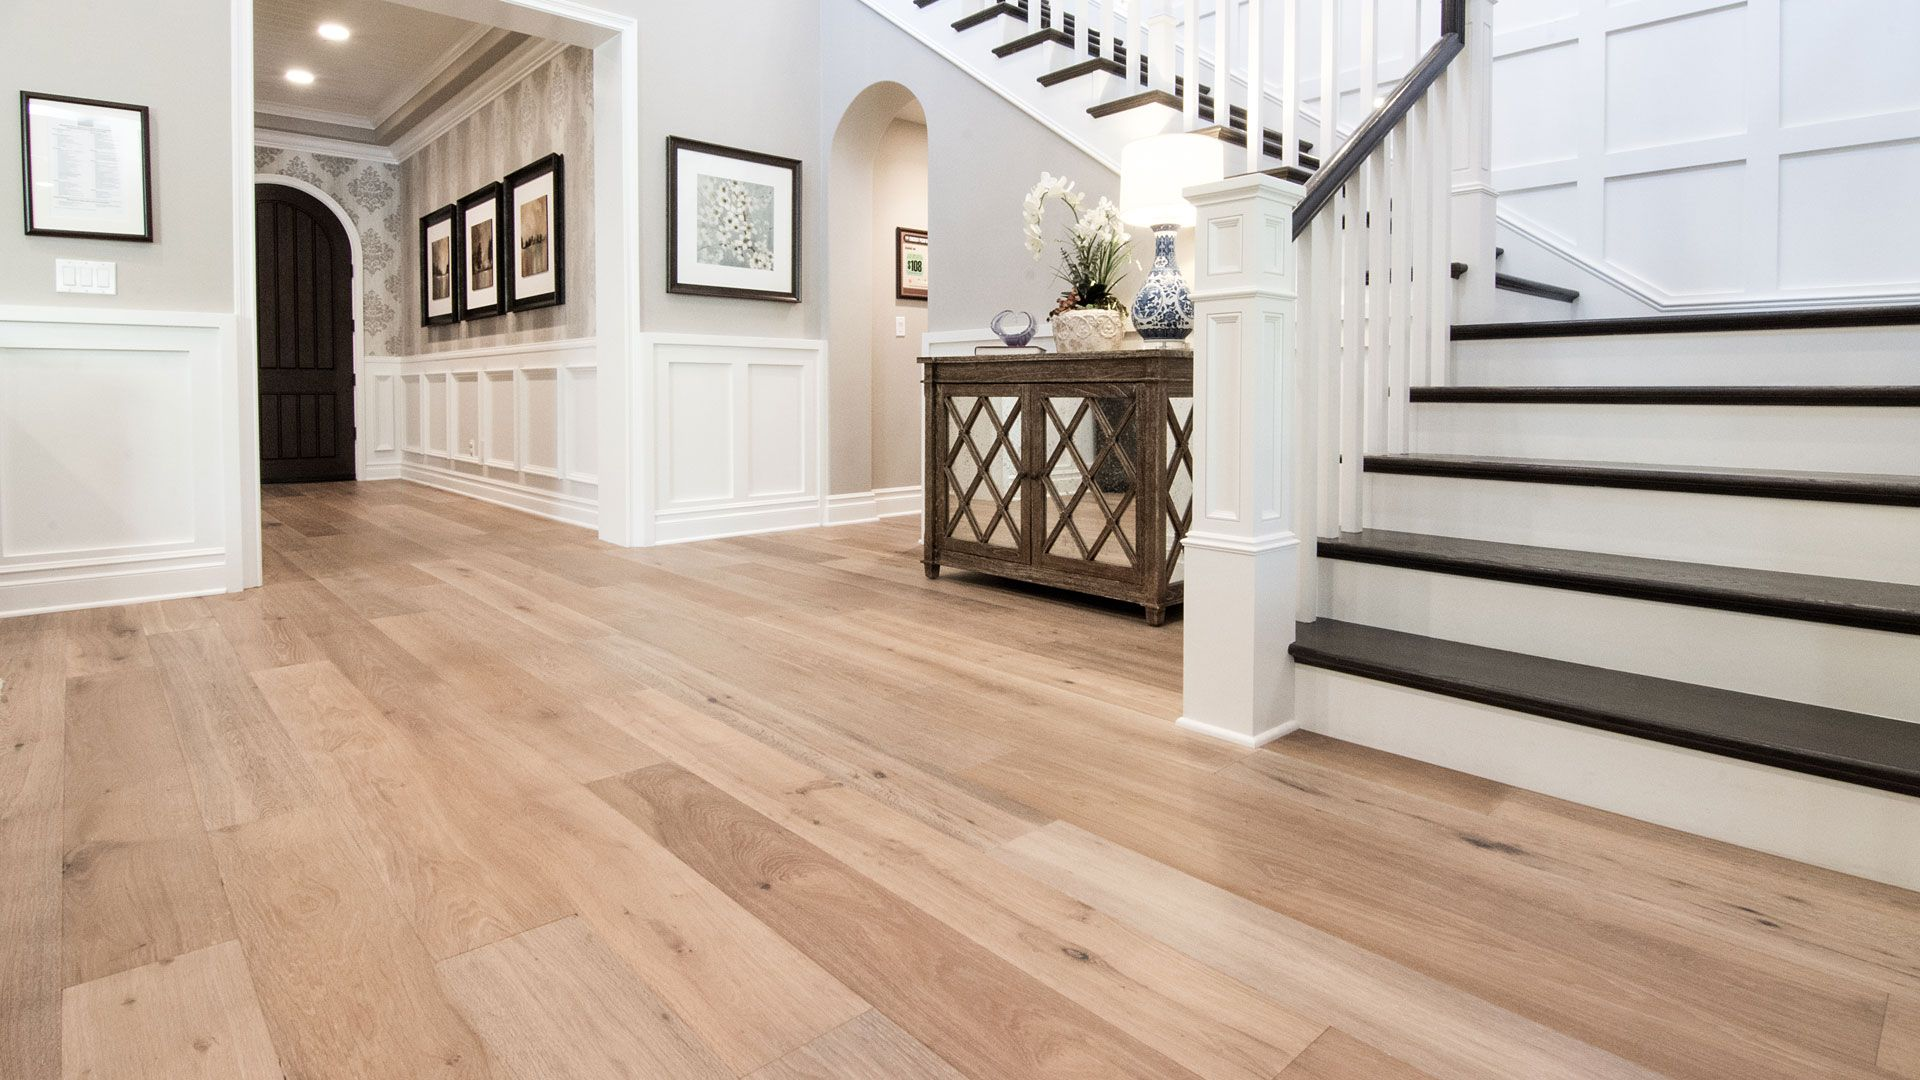 Delightful Design Matte Finish Hardwood Floors Is The New Black Latest Trend In Flooring